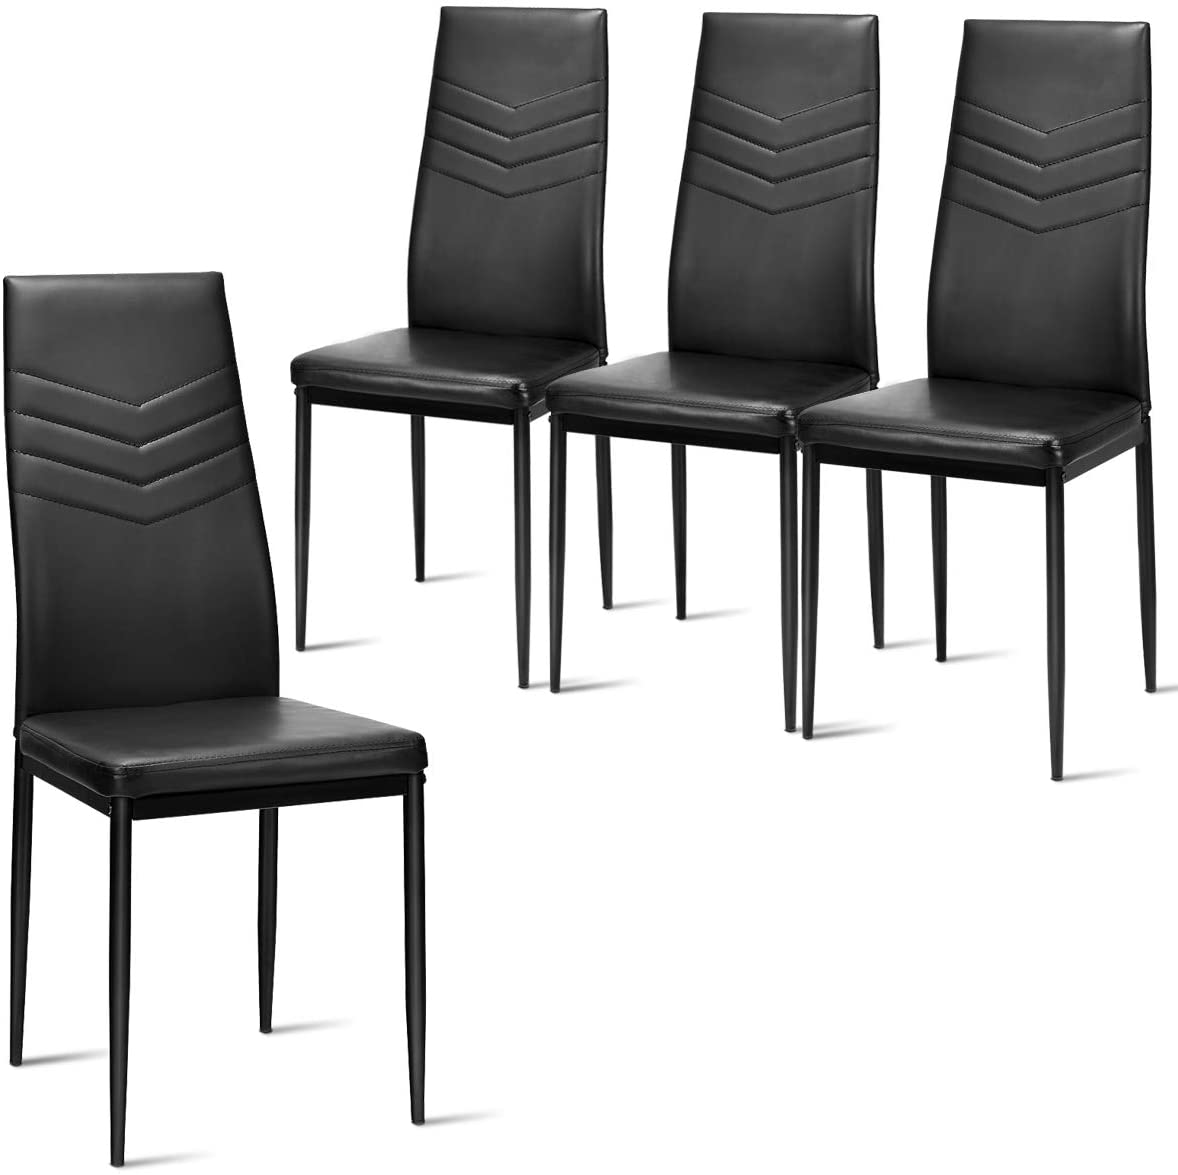 Giantex Set of 4 Dining Chairs Black with High Back, Upholstered Cushion, Sturdy Metal Frame, Powder Coated Tube Legs, PVC Leather, Soft, Light, Modern, Leisure, Home Kitchen Living Room Bed (Black)